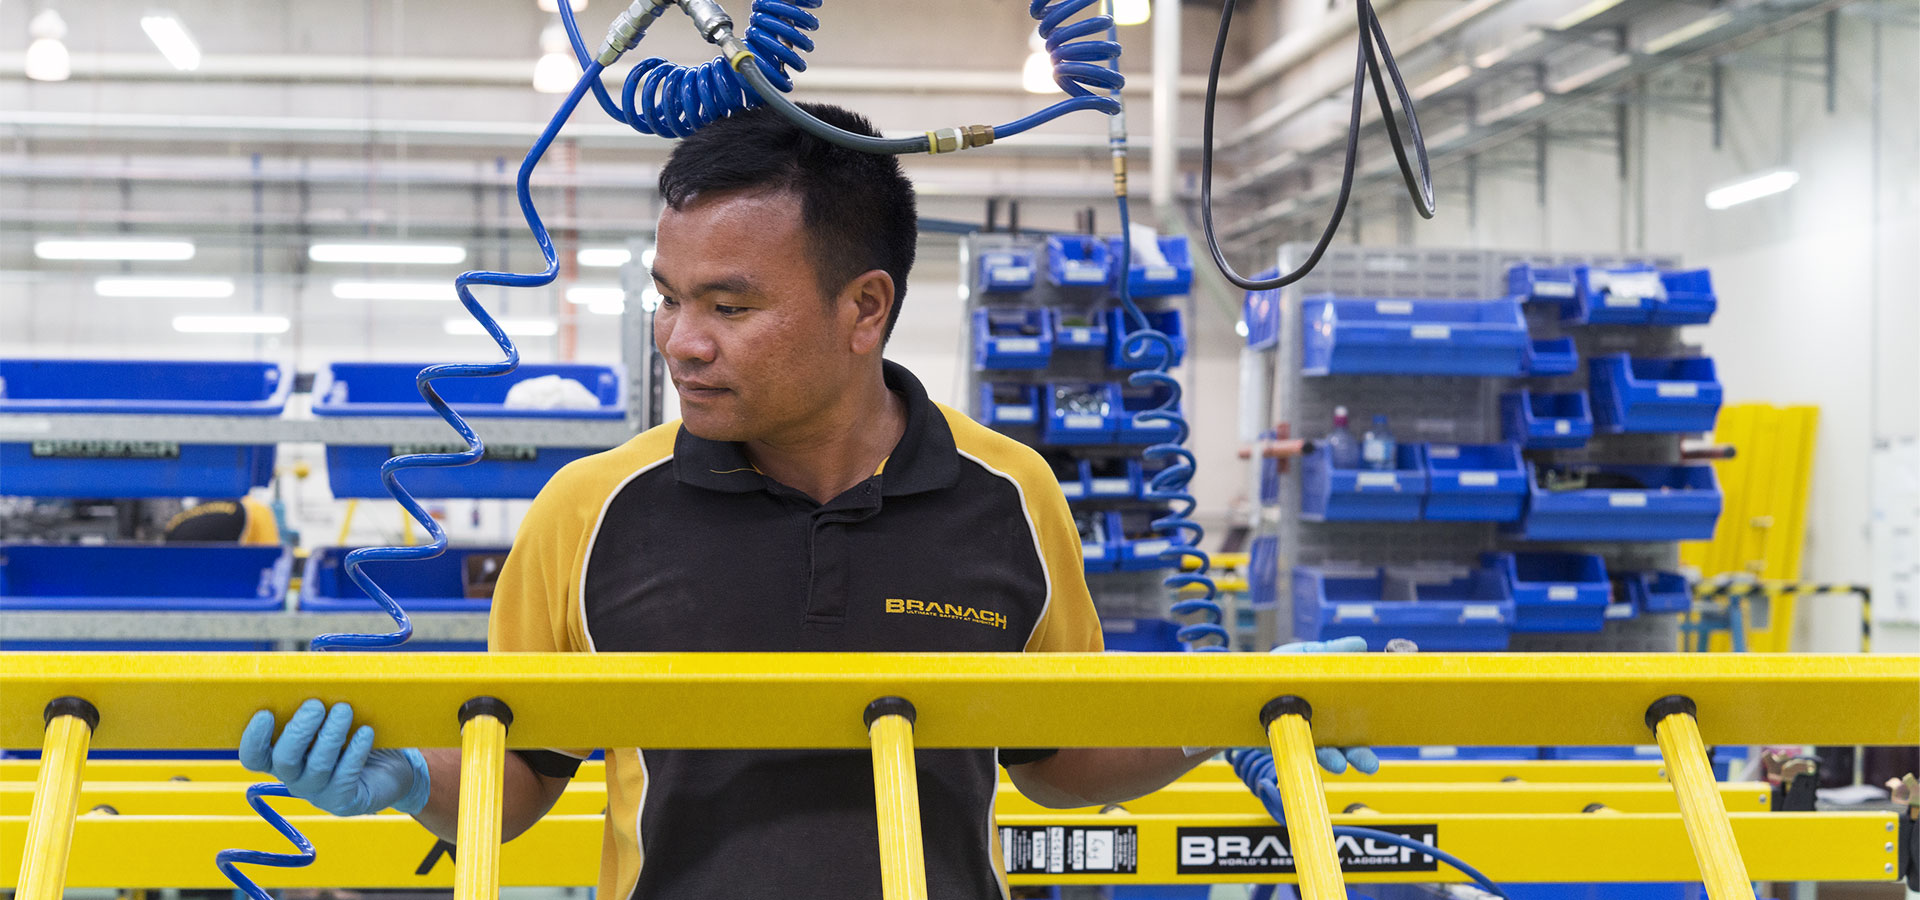 Branach staff member holding a fibreglass PowerMaster Single ladder in the factory.